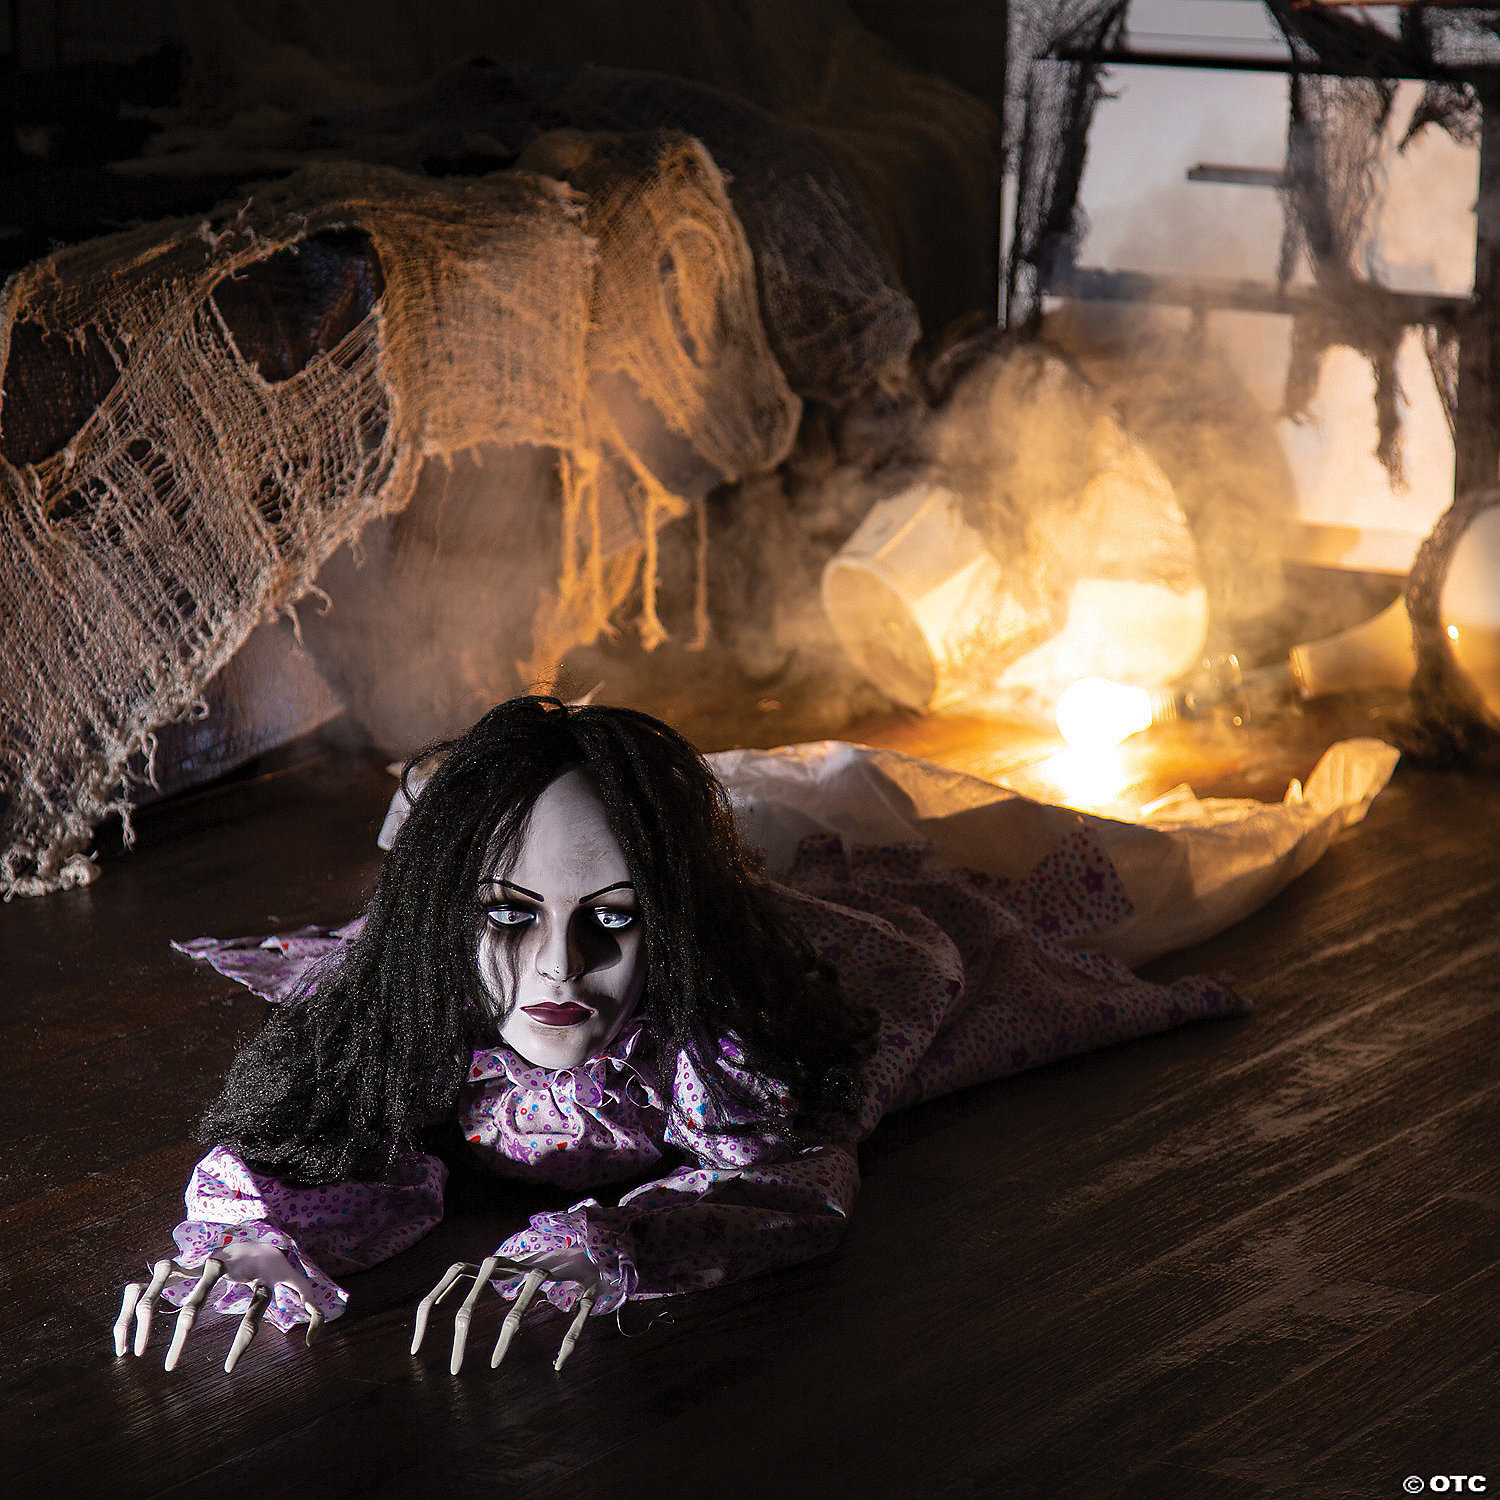 Sprint New Halloween 2020 Animated Crawling Creepy Woman Halloween Decoration | Oriental Trading